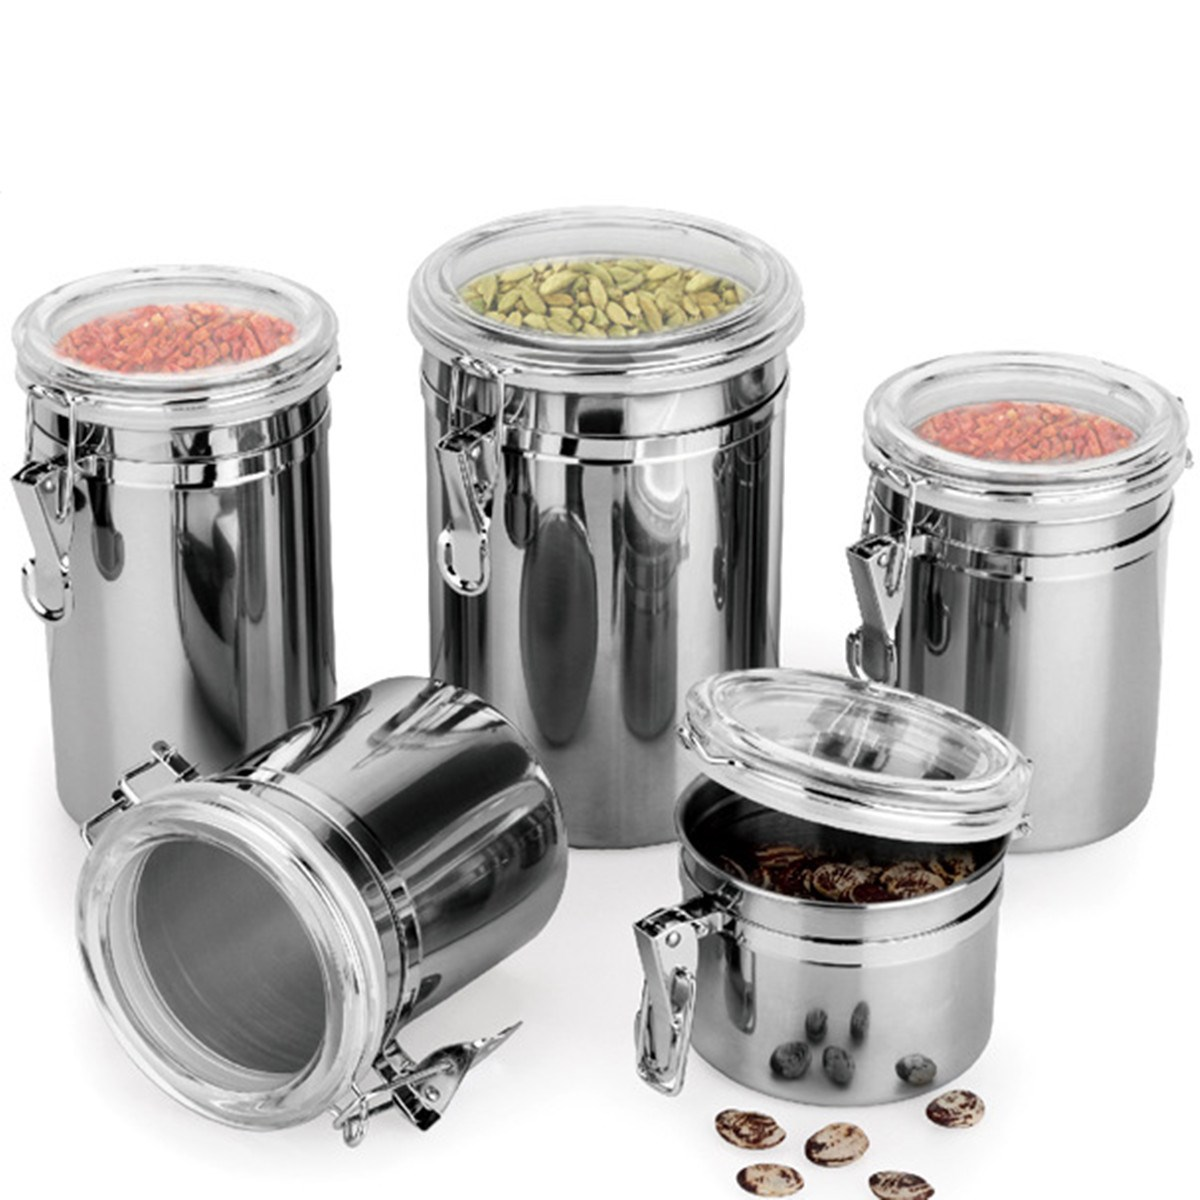 Kitchen Storage Containers stainless steel kitchen storage containers reviews - online